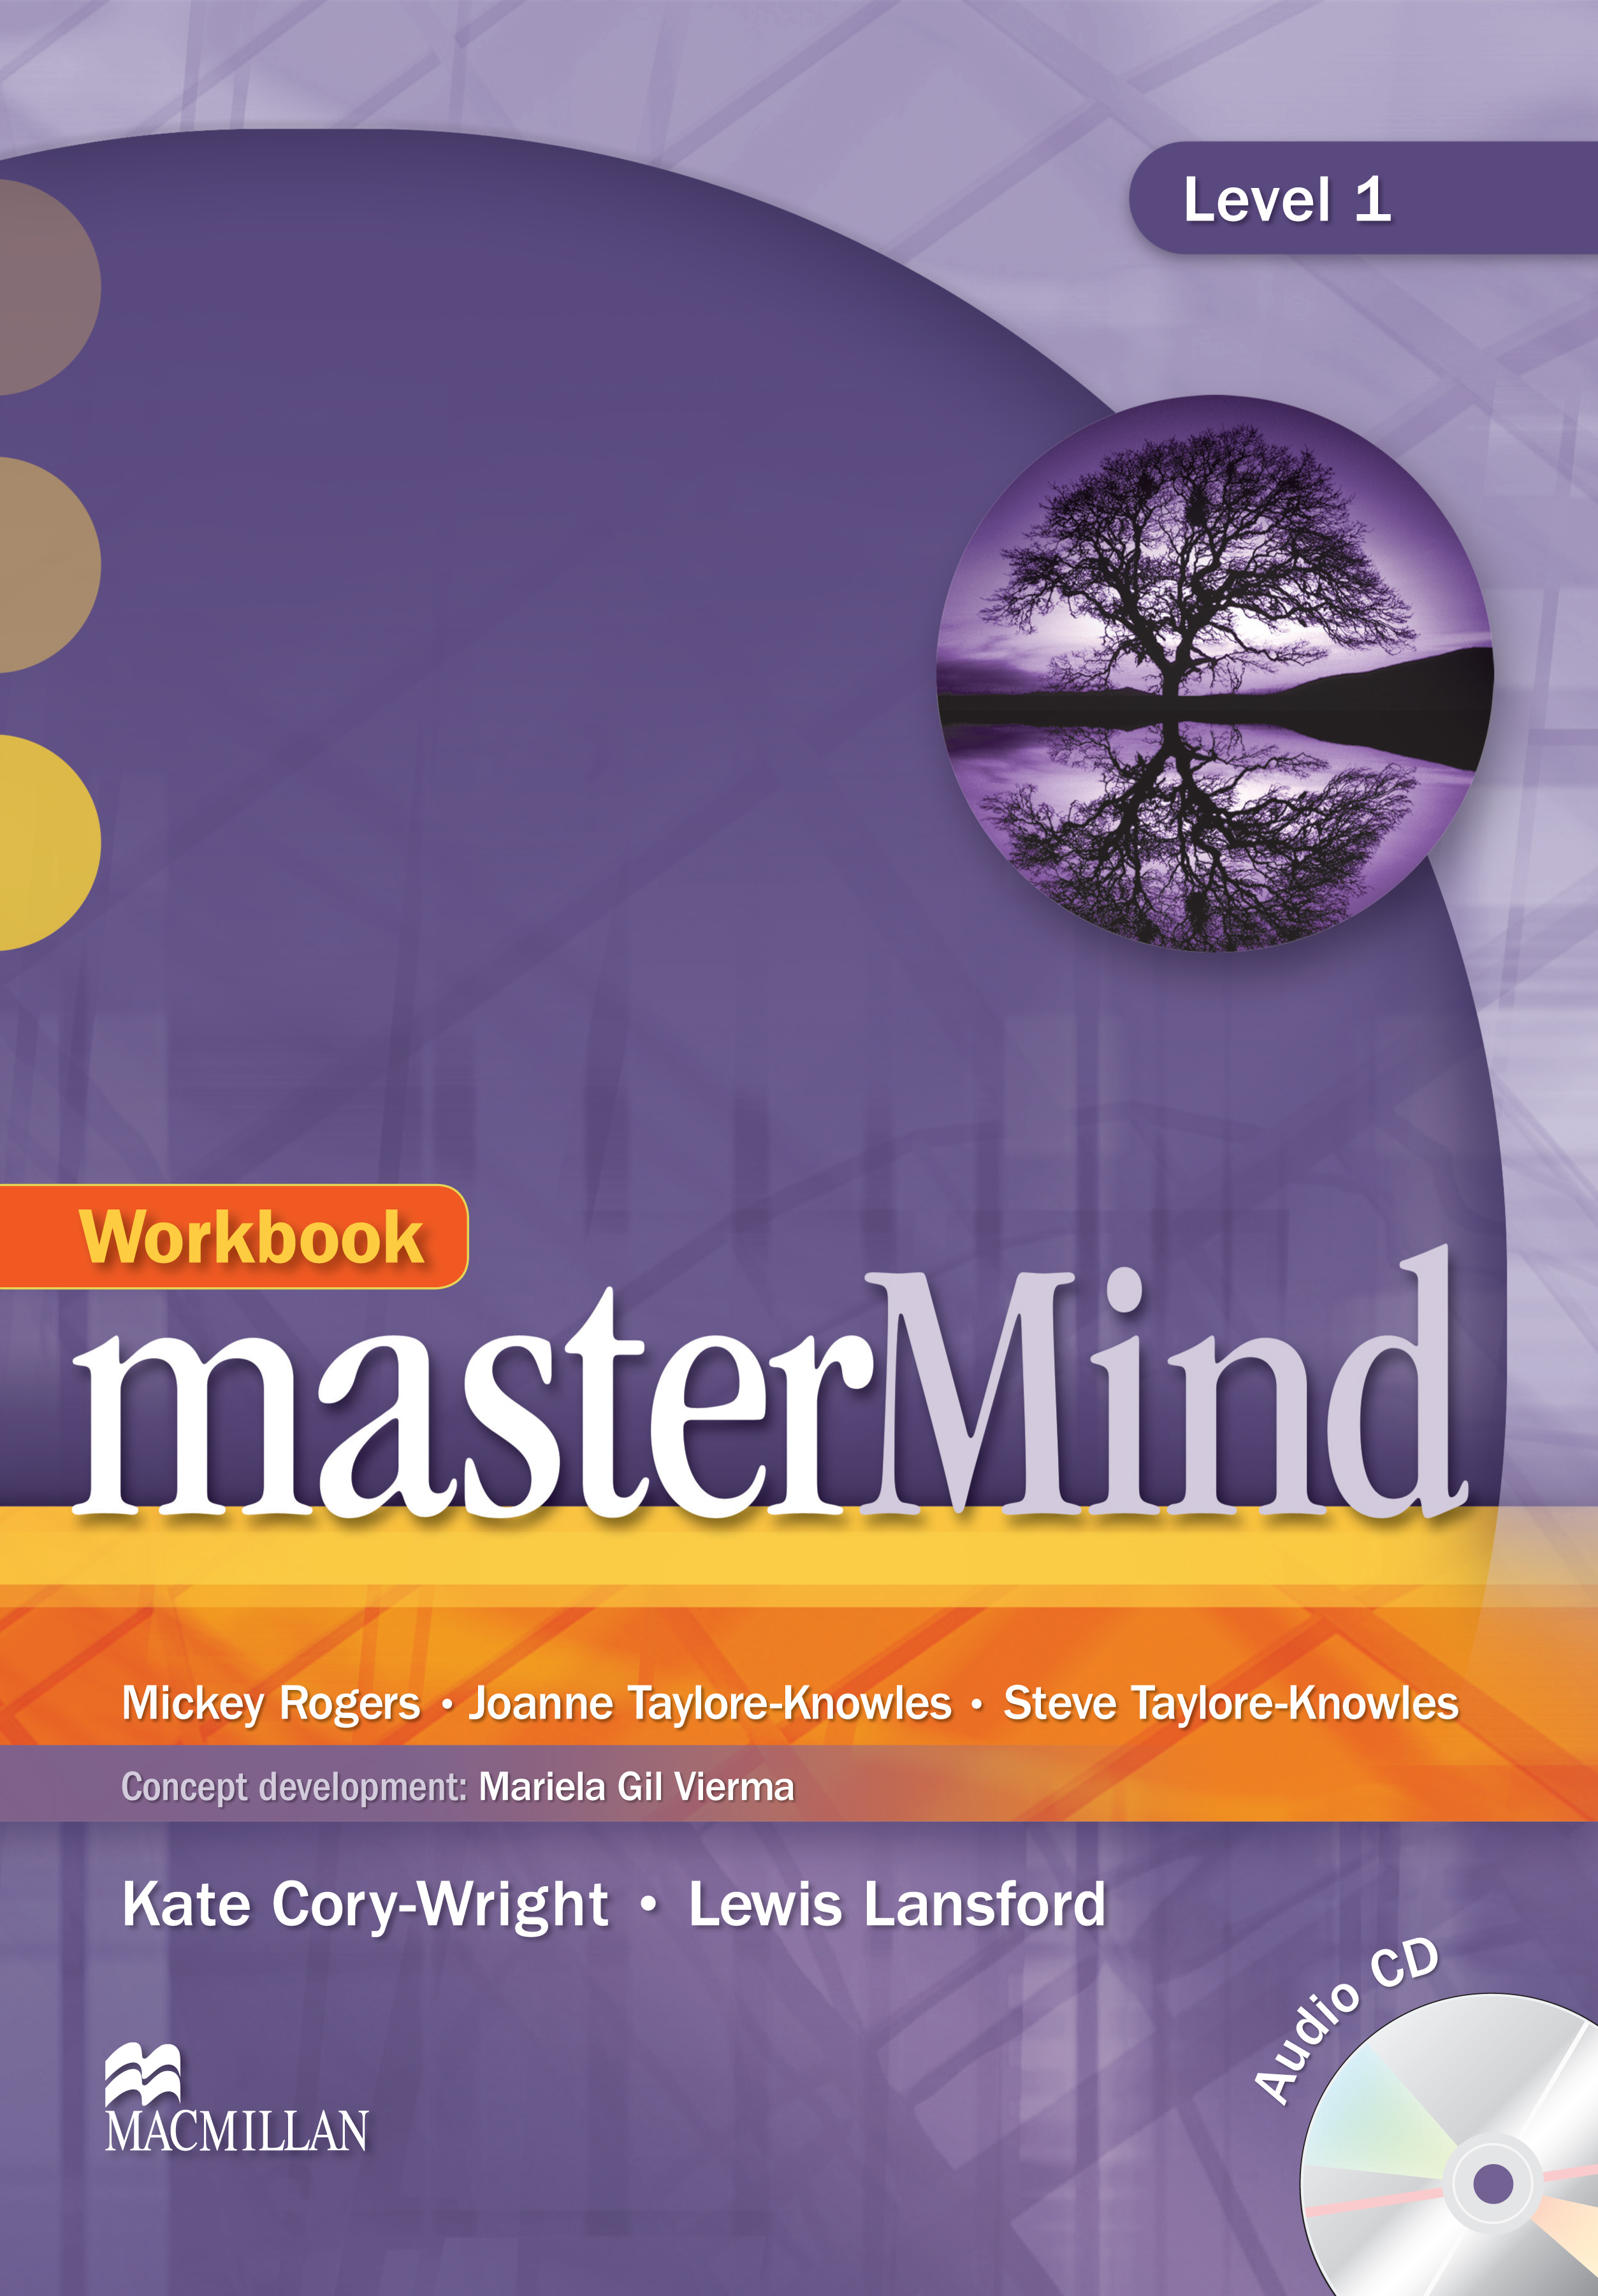 masterMind 1 Workbook and CD